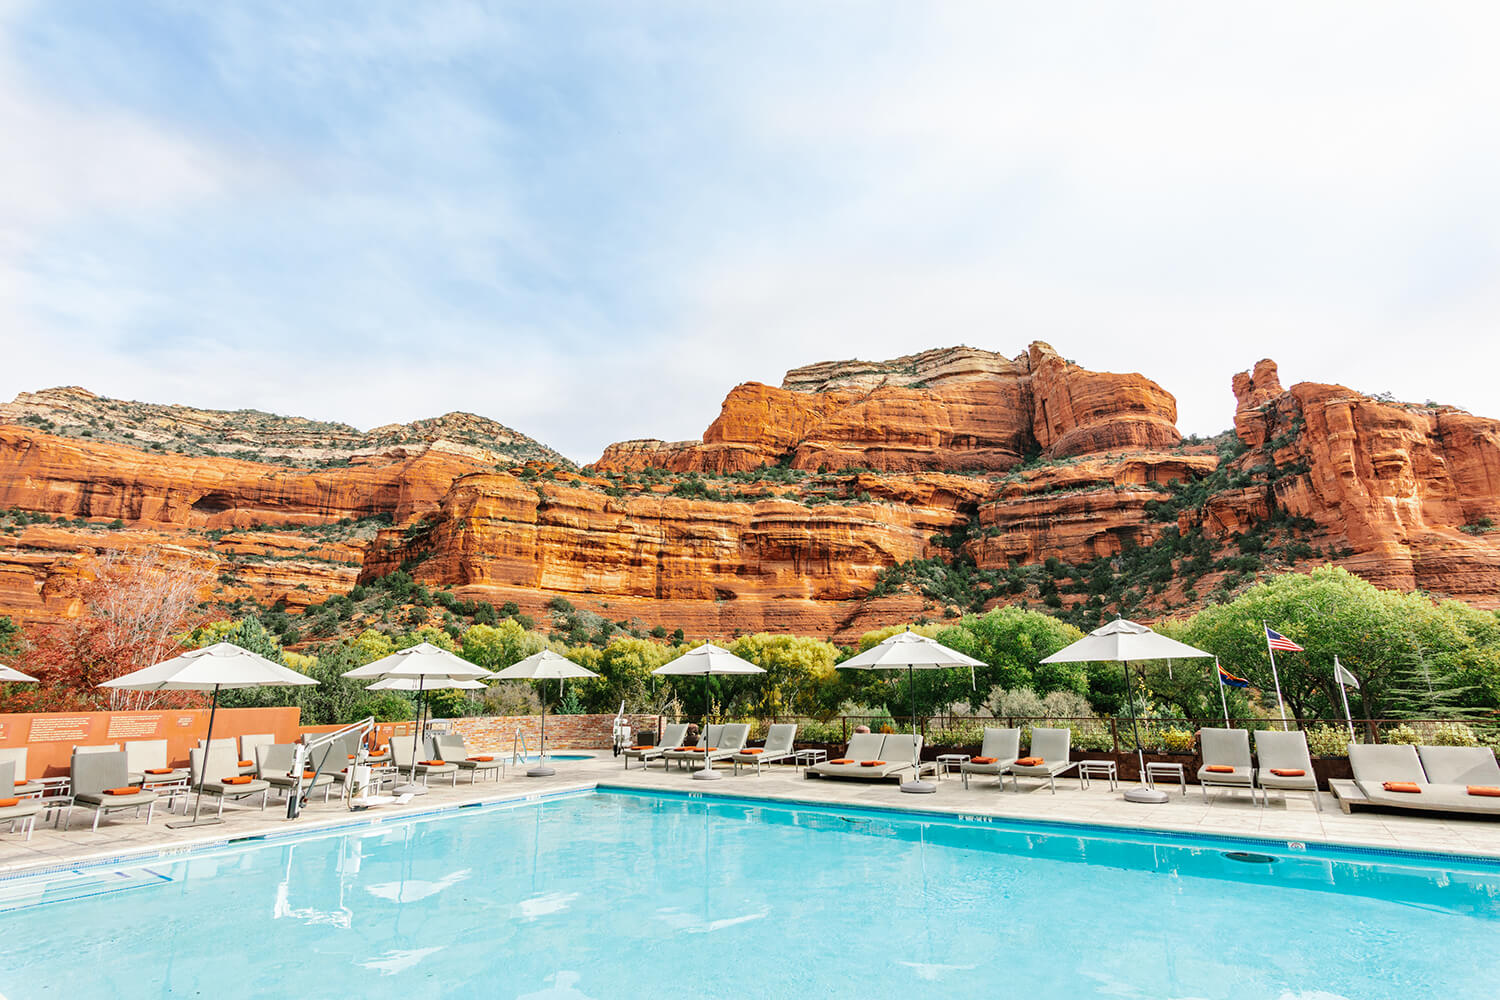 The Most Beautiful Swimming Pools Around the World — The Spa ...